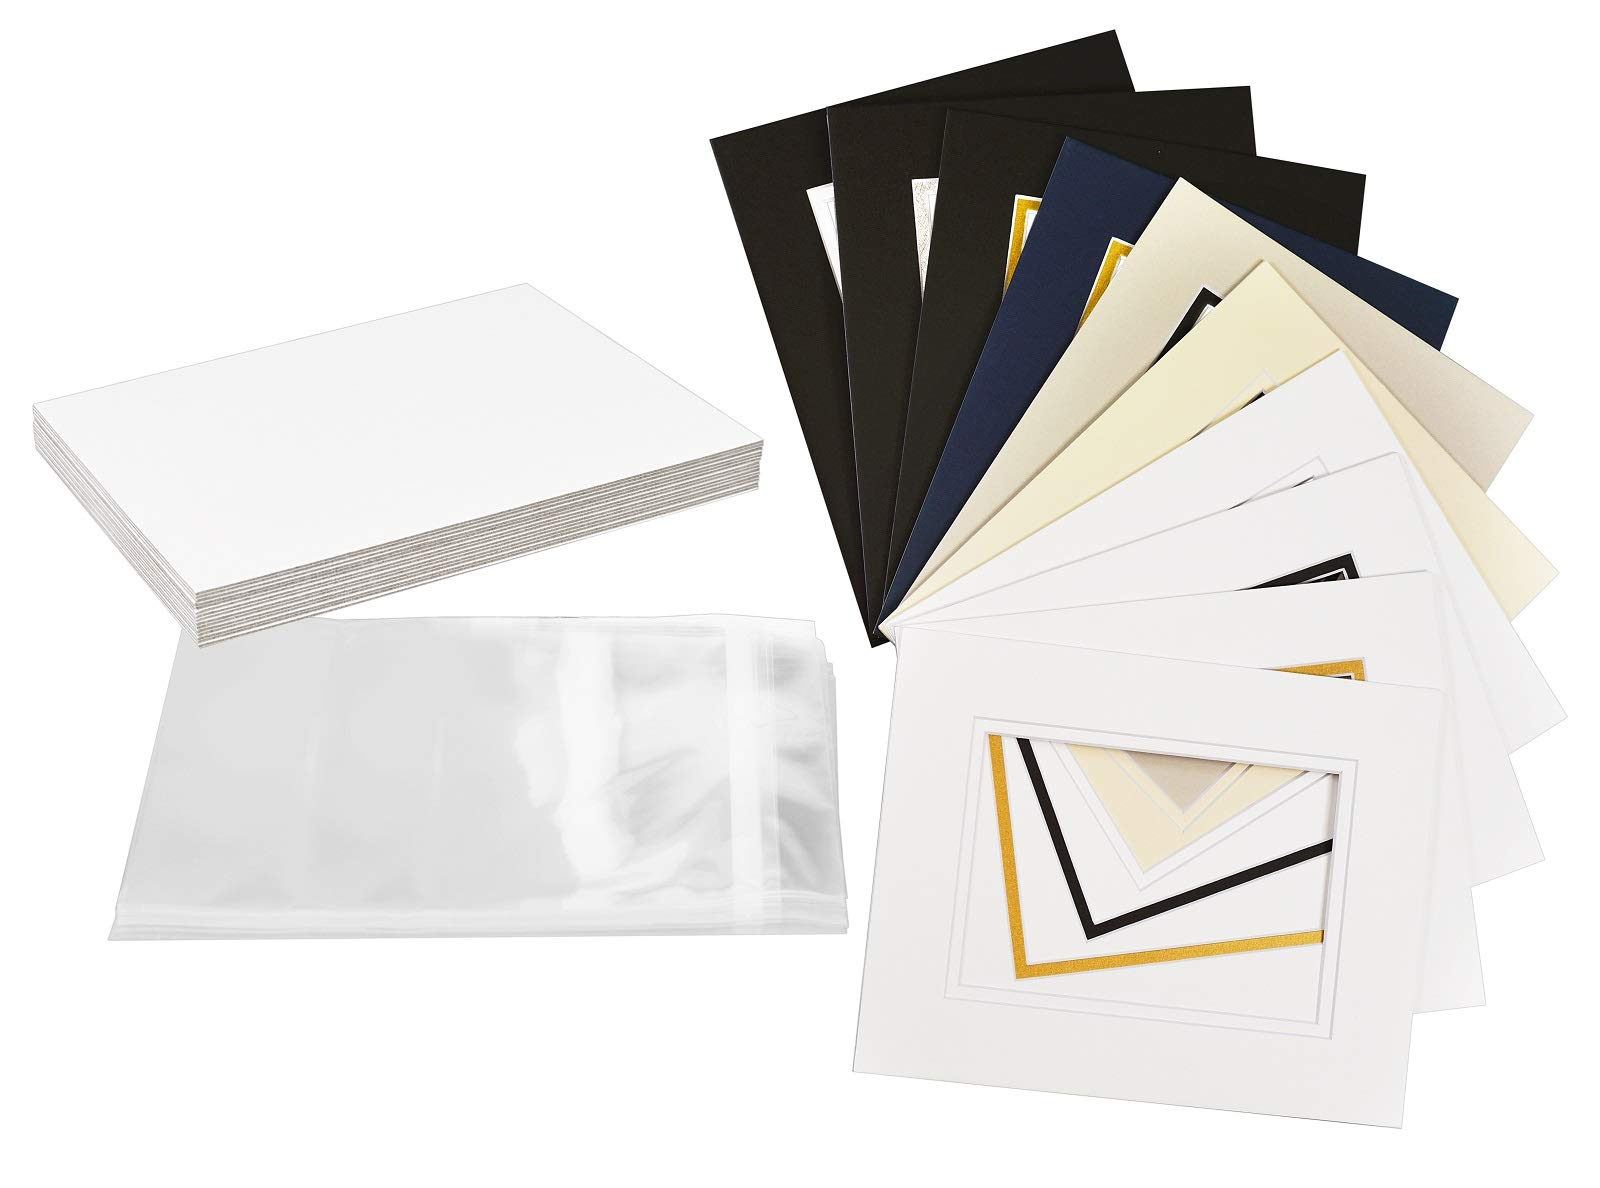 Backing Pack of 25 8x10 White Picture Mats Mattes with White Core Bevel Cut for 5x7 Photo Bags